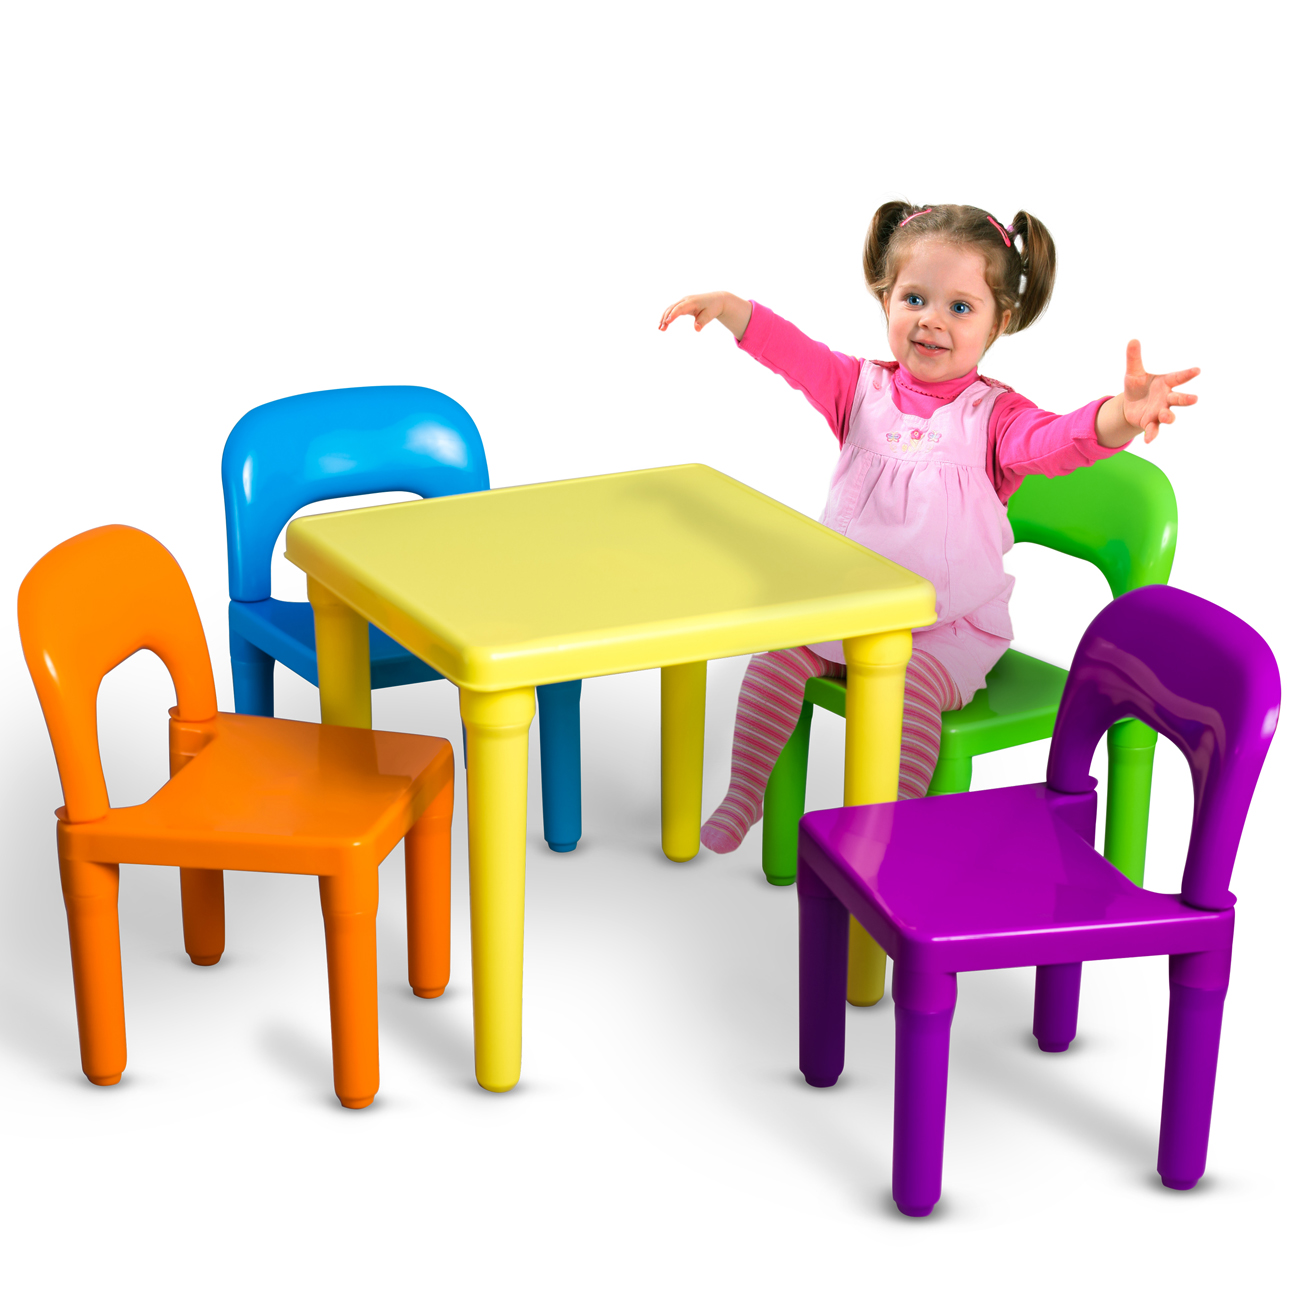 Kids Table and Chairs Play Set Toddler Child Toy Activity Furniture ...